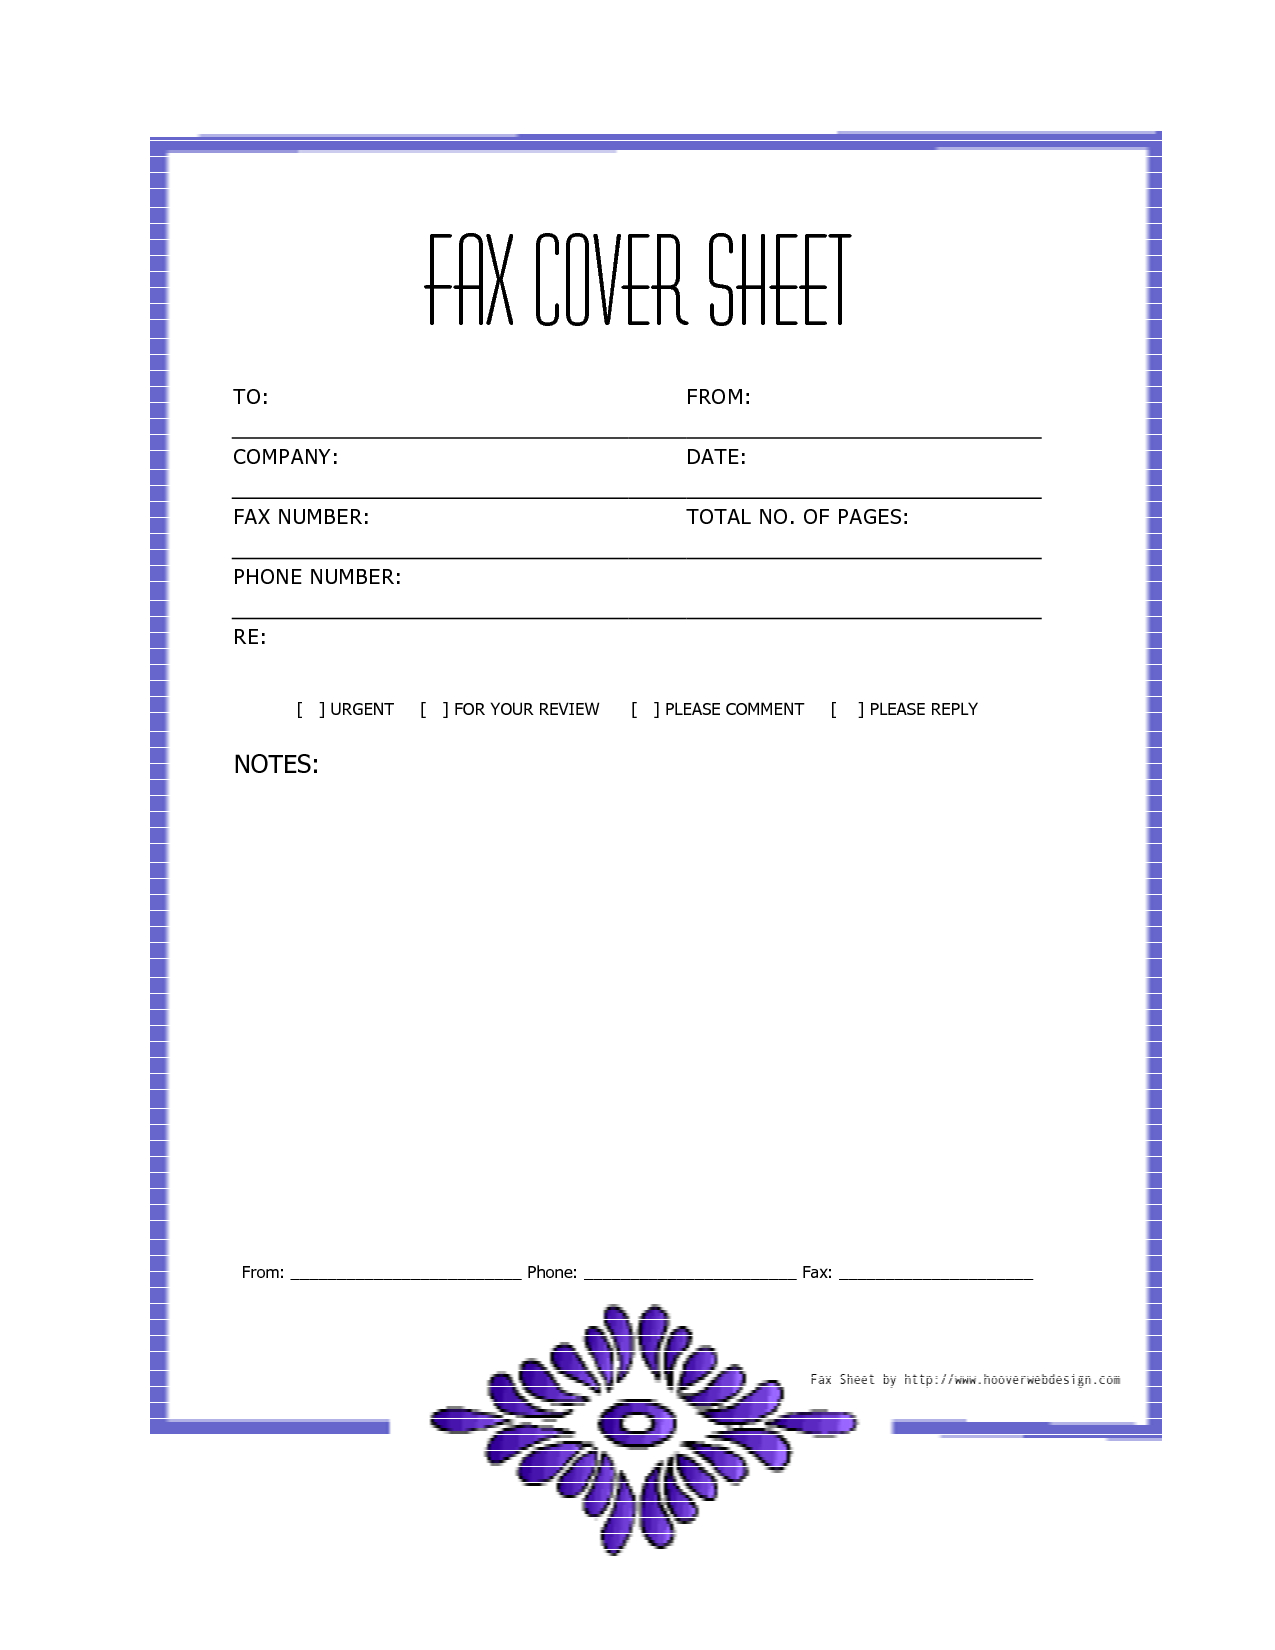 Free Downloads Fax Covers Sheets | Free Printable Fax Cover Sheet - Free Printable Fax Cover Sheet